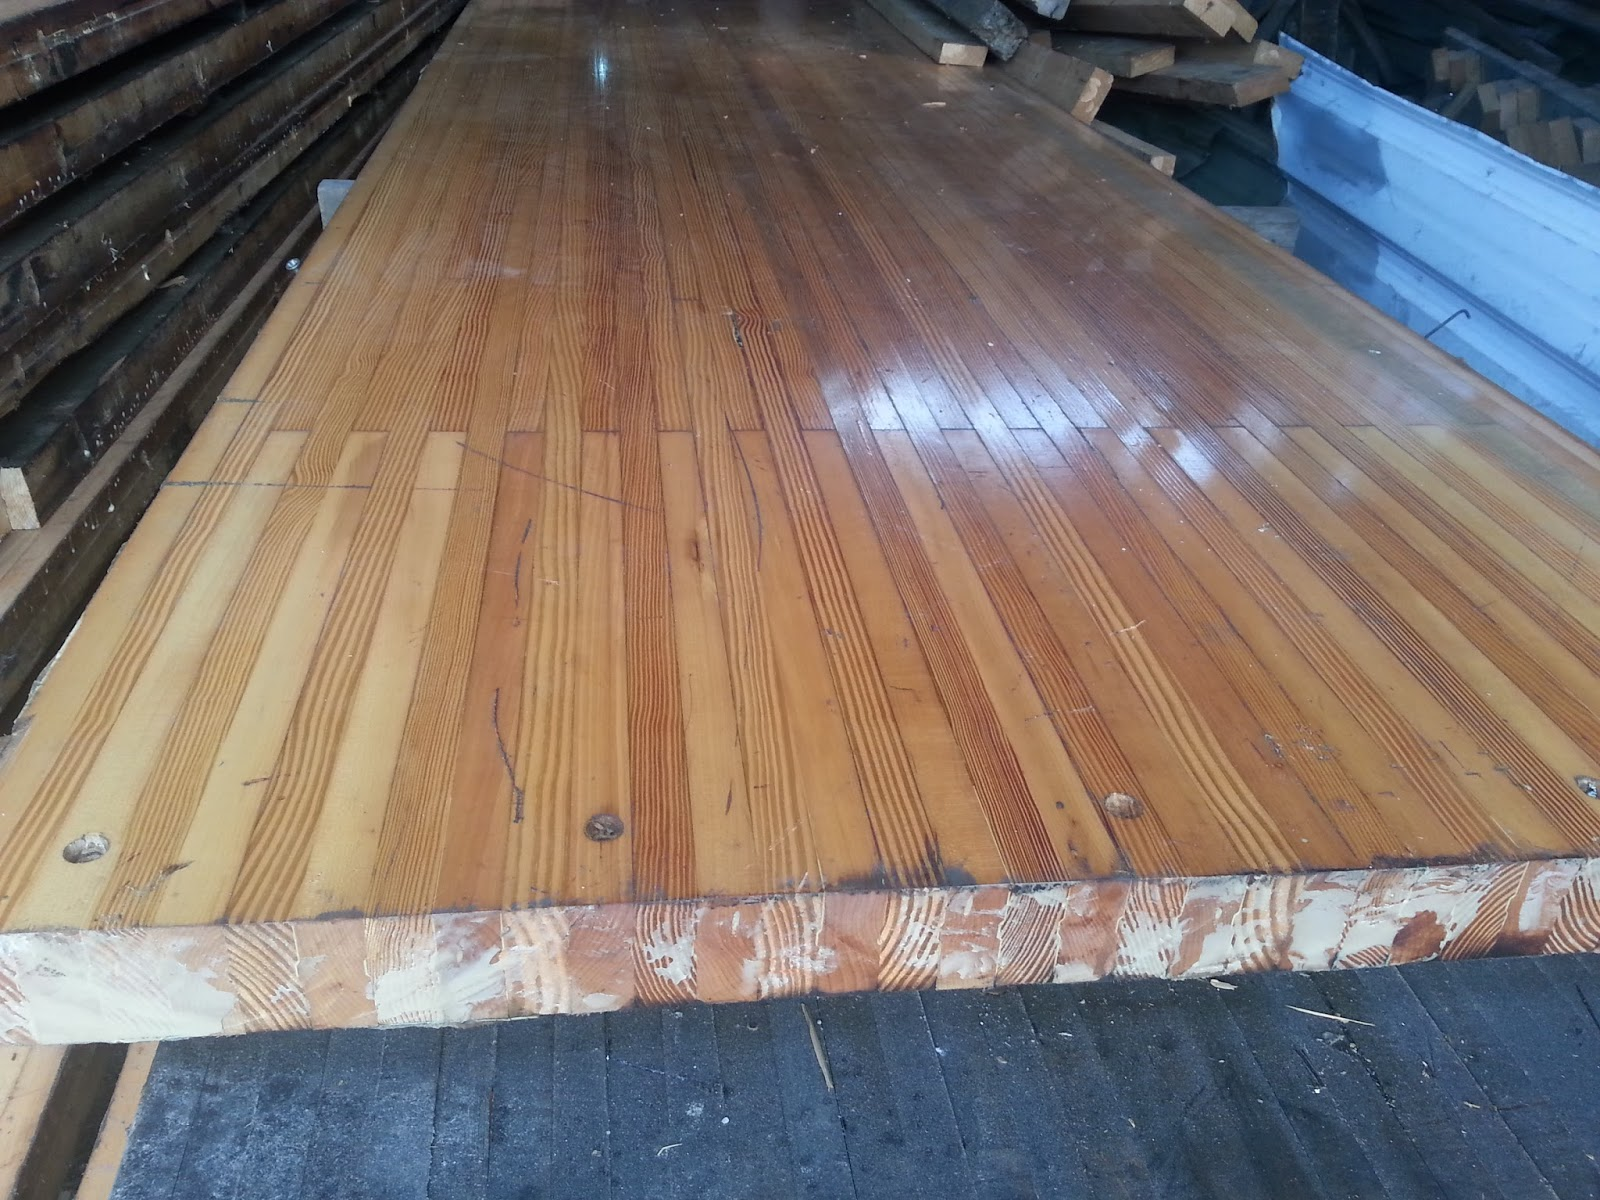 Imported used bowling alley floor board solid pine wood